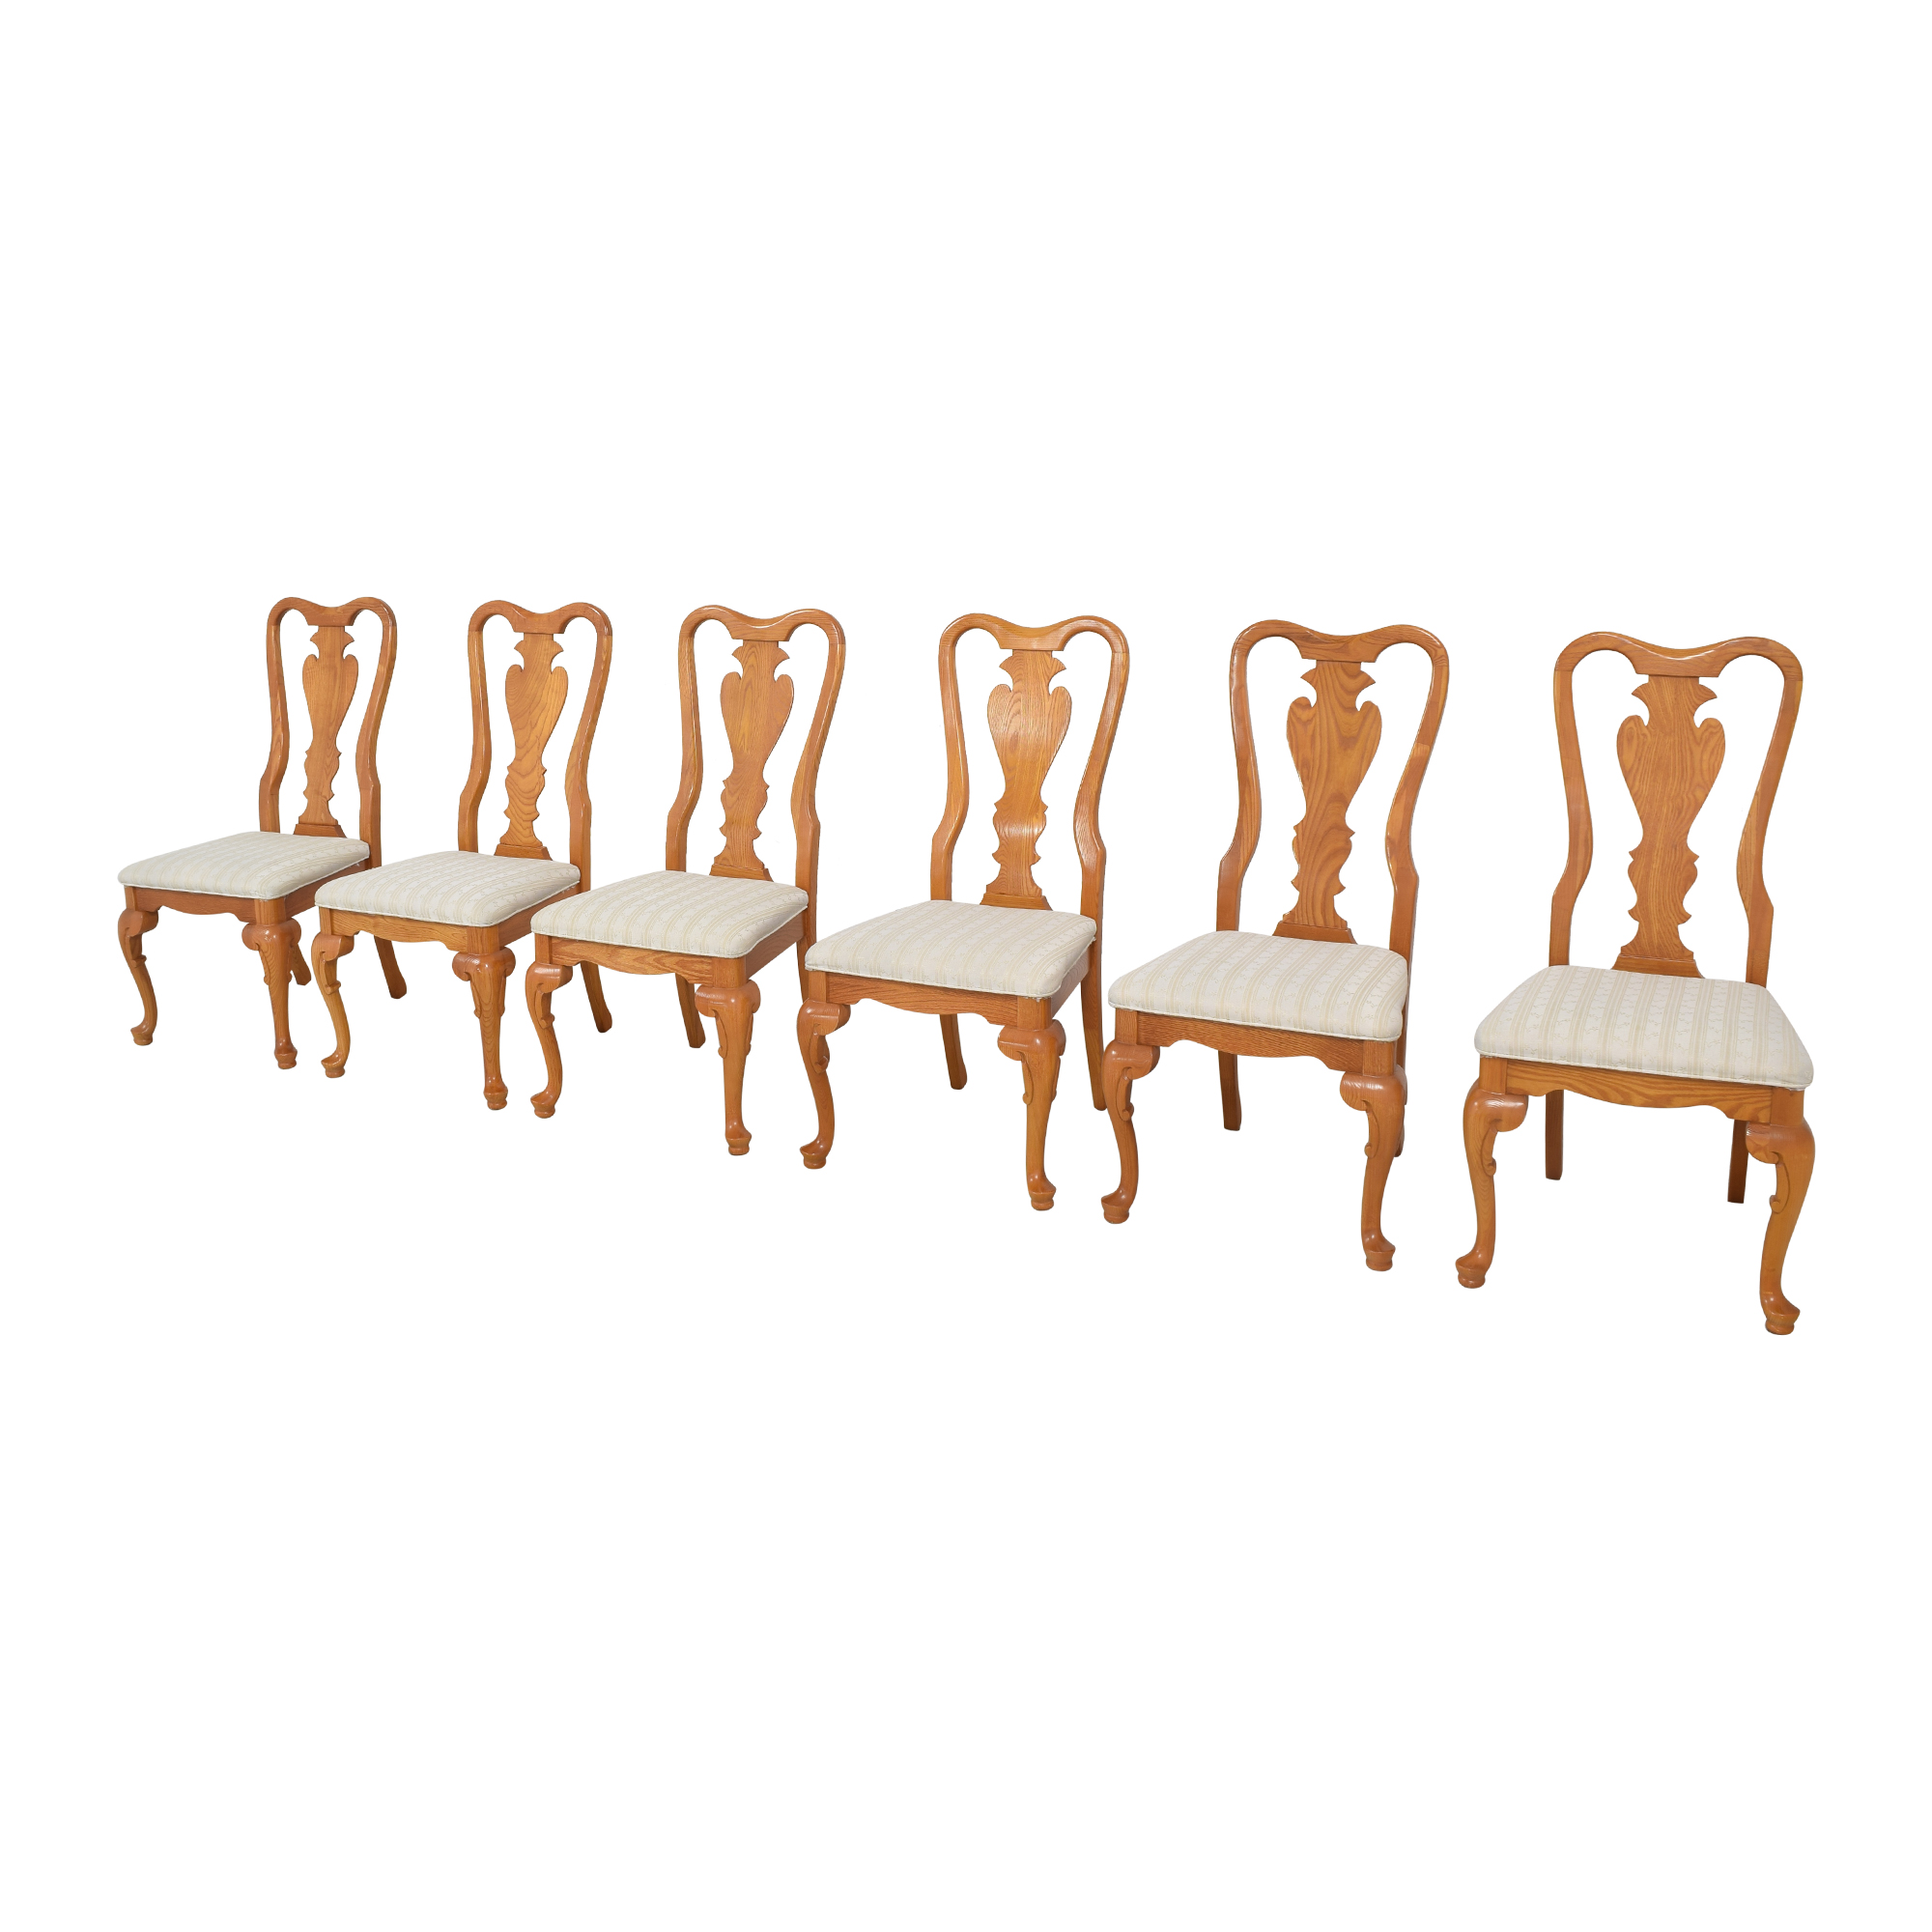 Sumter Cabinet Co. Sumter Cabinet Company Dining Chairs brown and beige